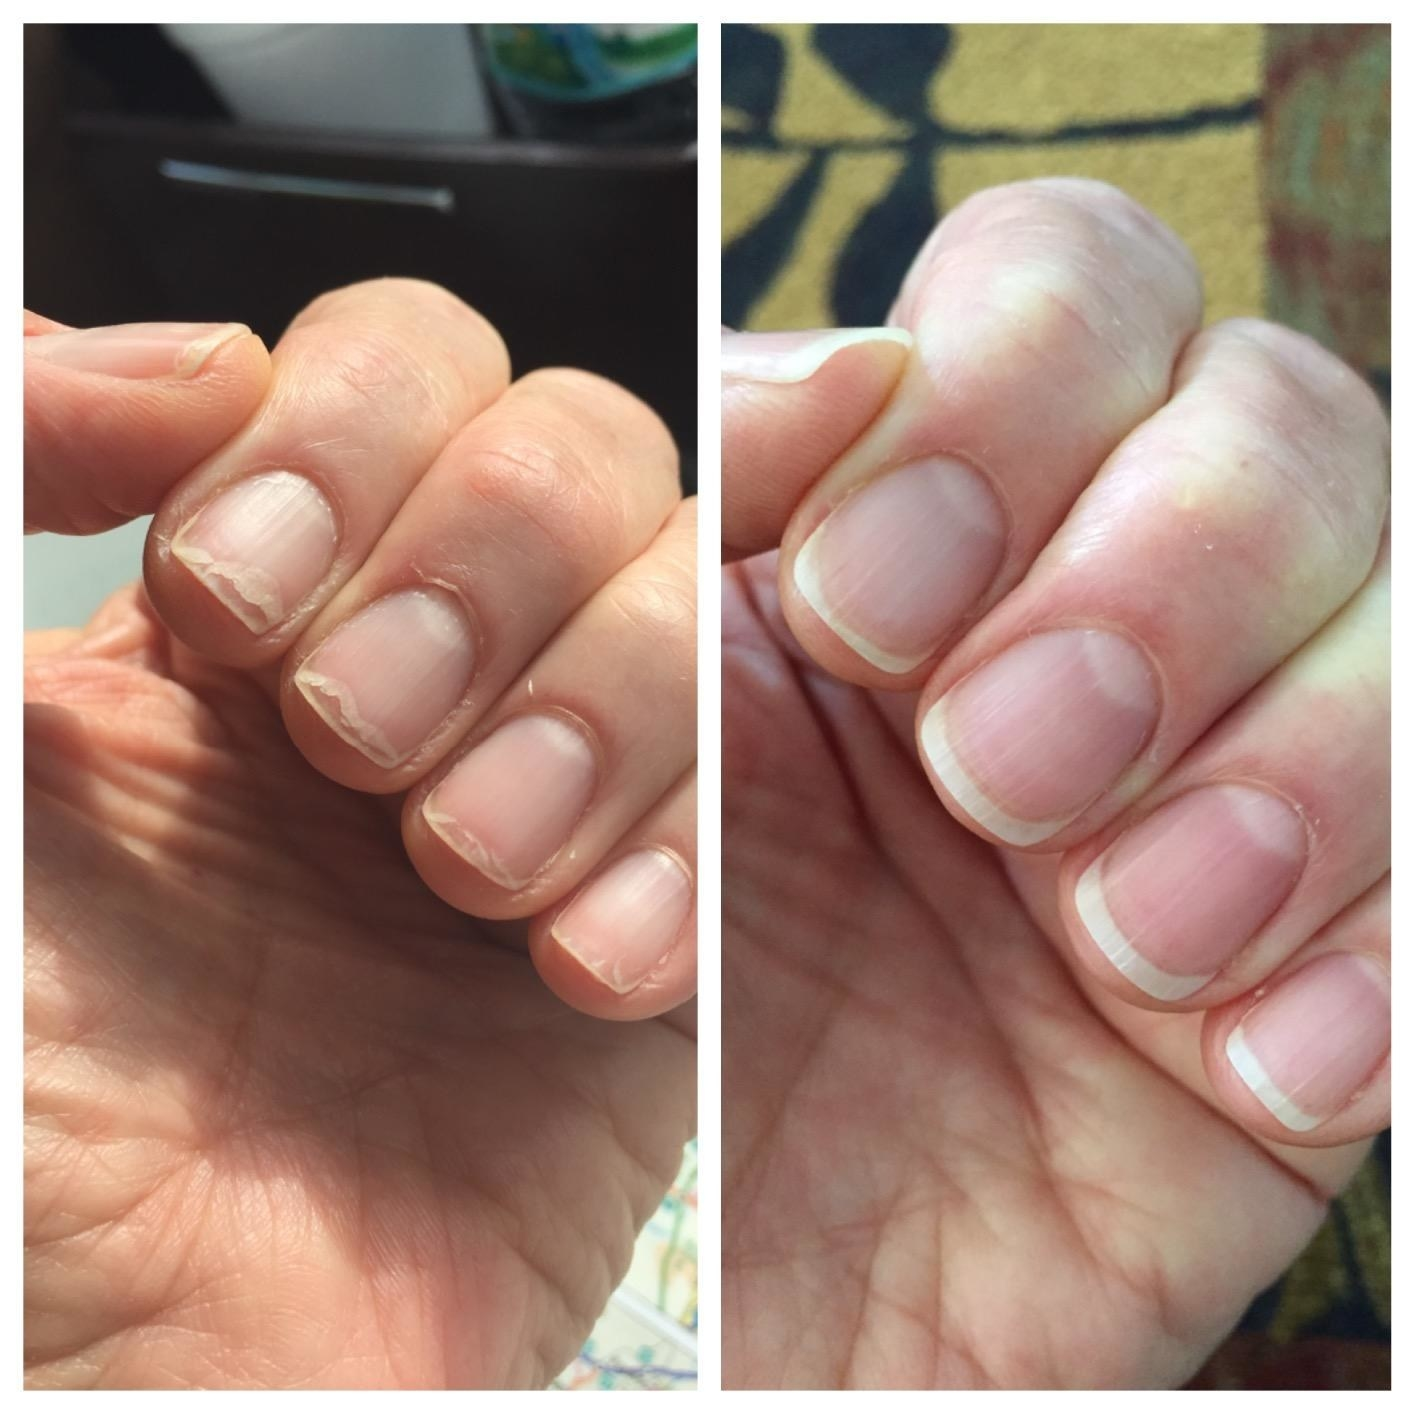 reviewer showing their nails before and after using the cuticle oil